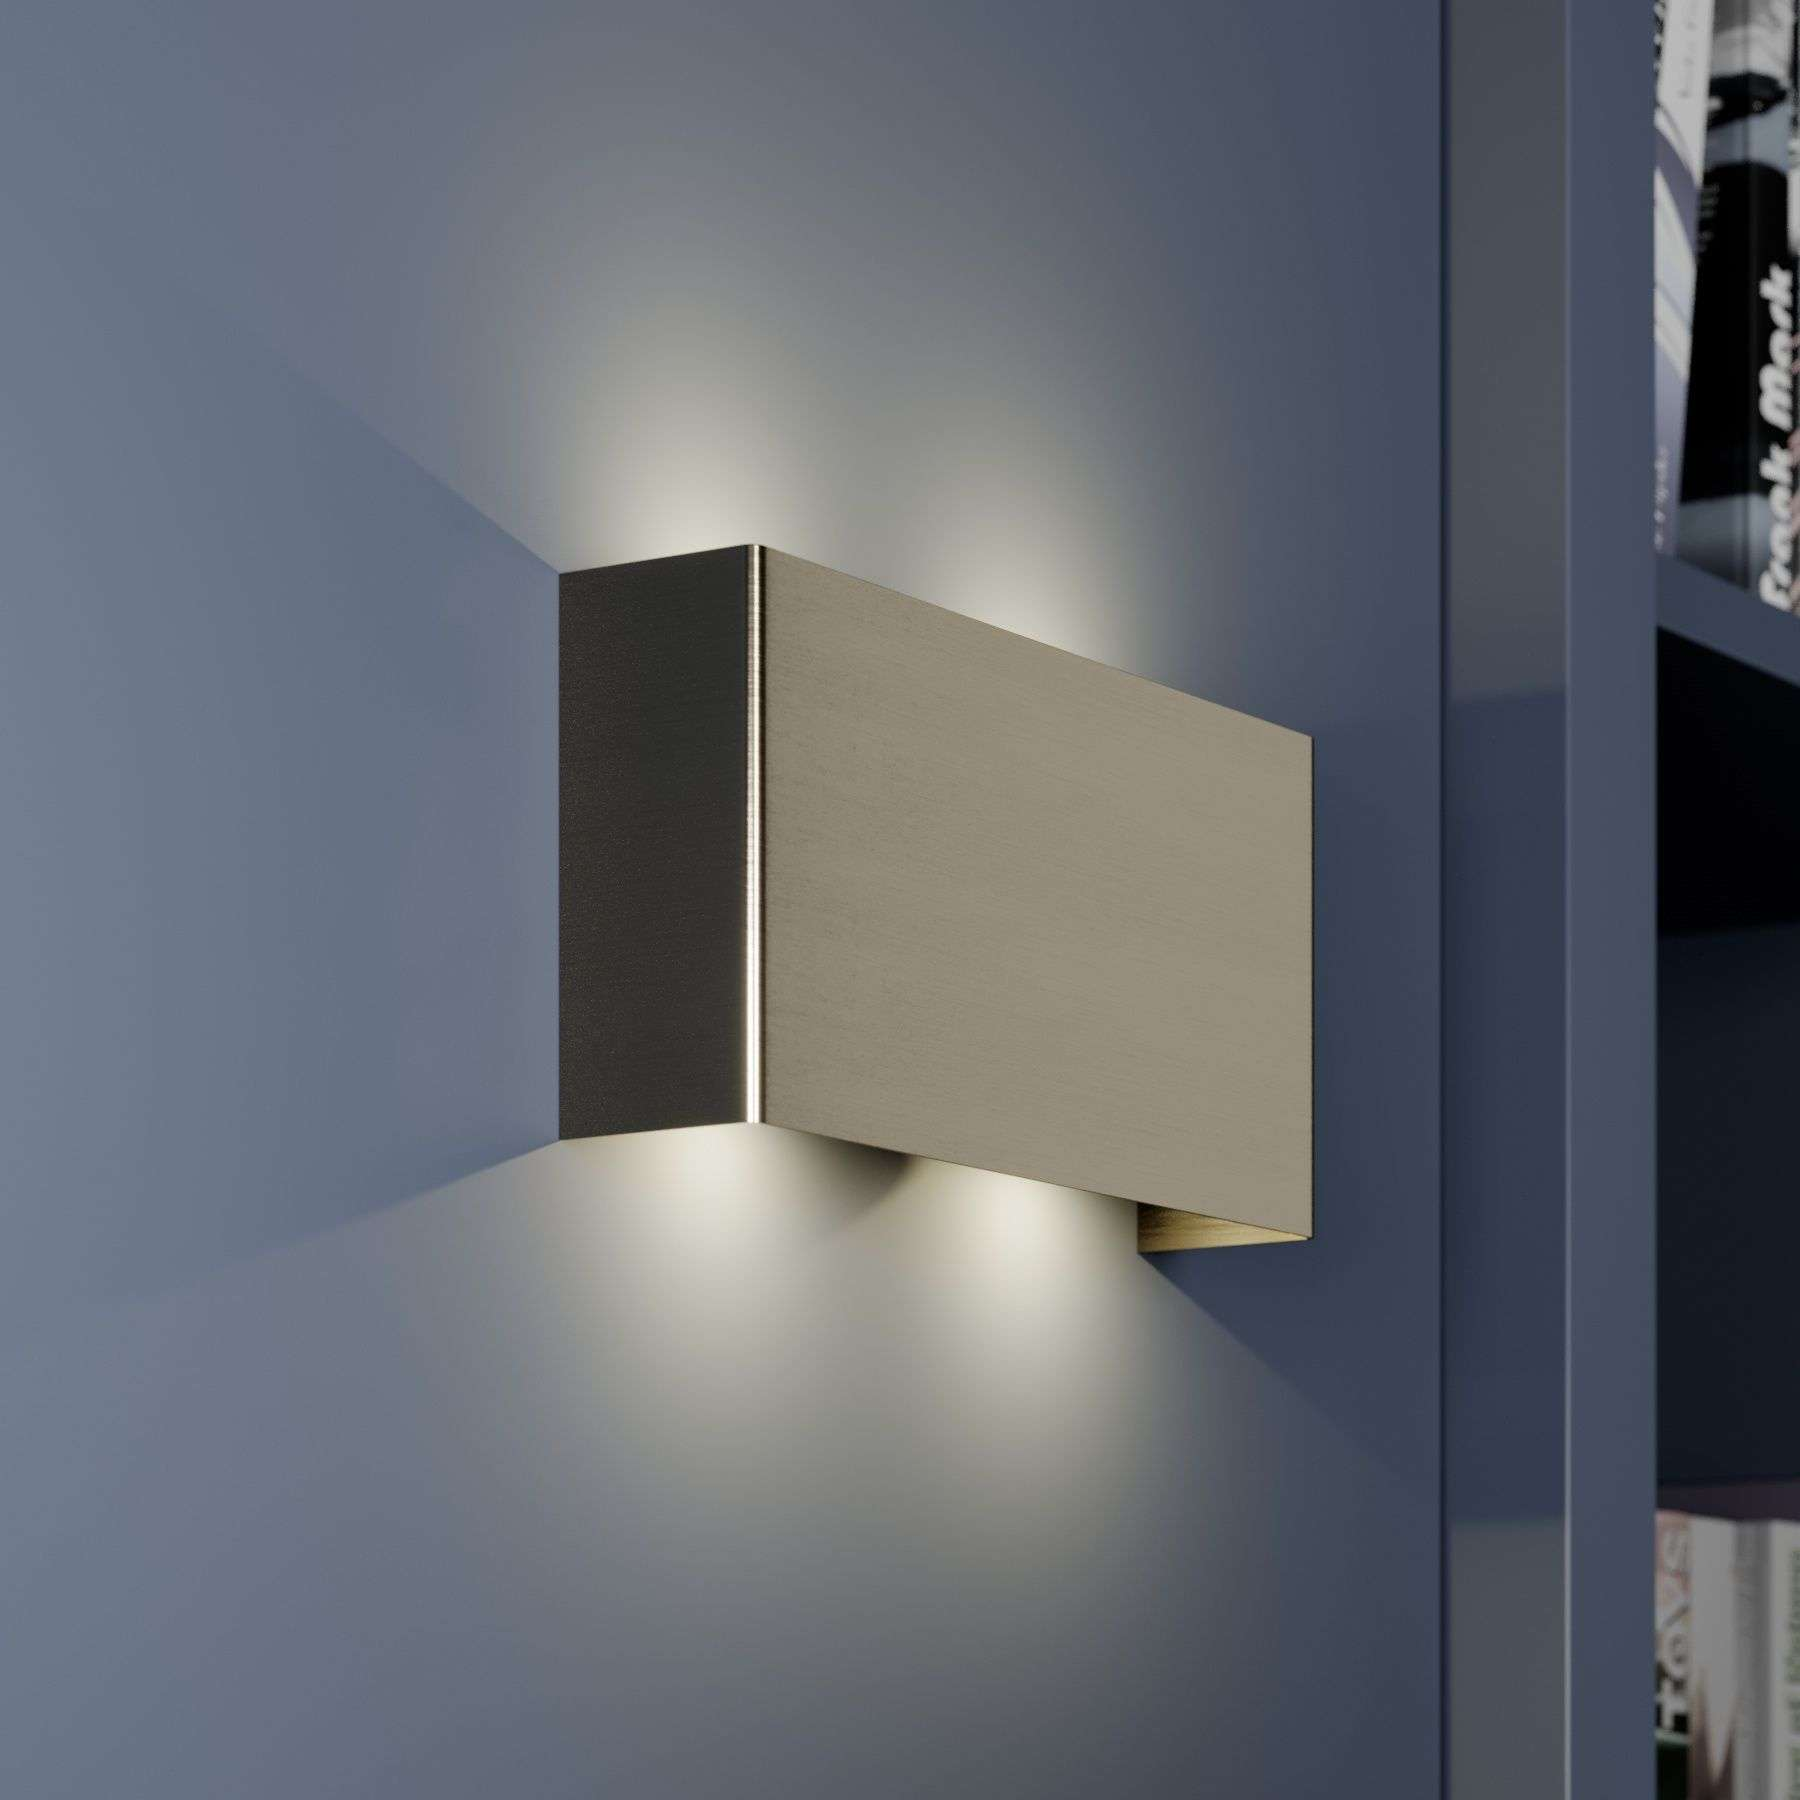 Led Wall Sconce Dimmable : Maja - dimmable LED wall light 22cm Lights.co.uk